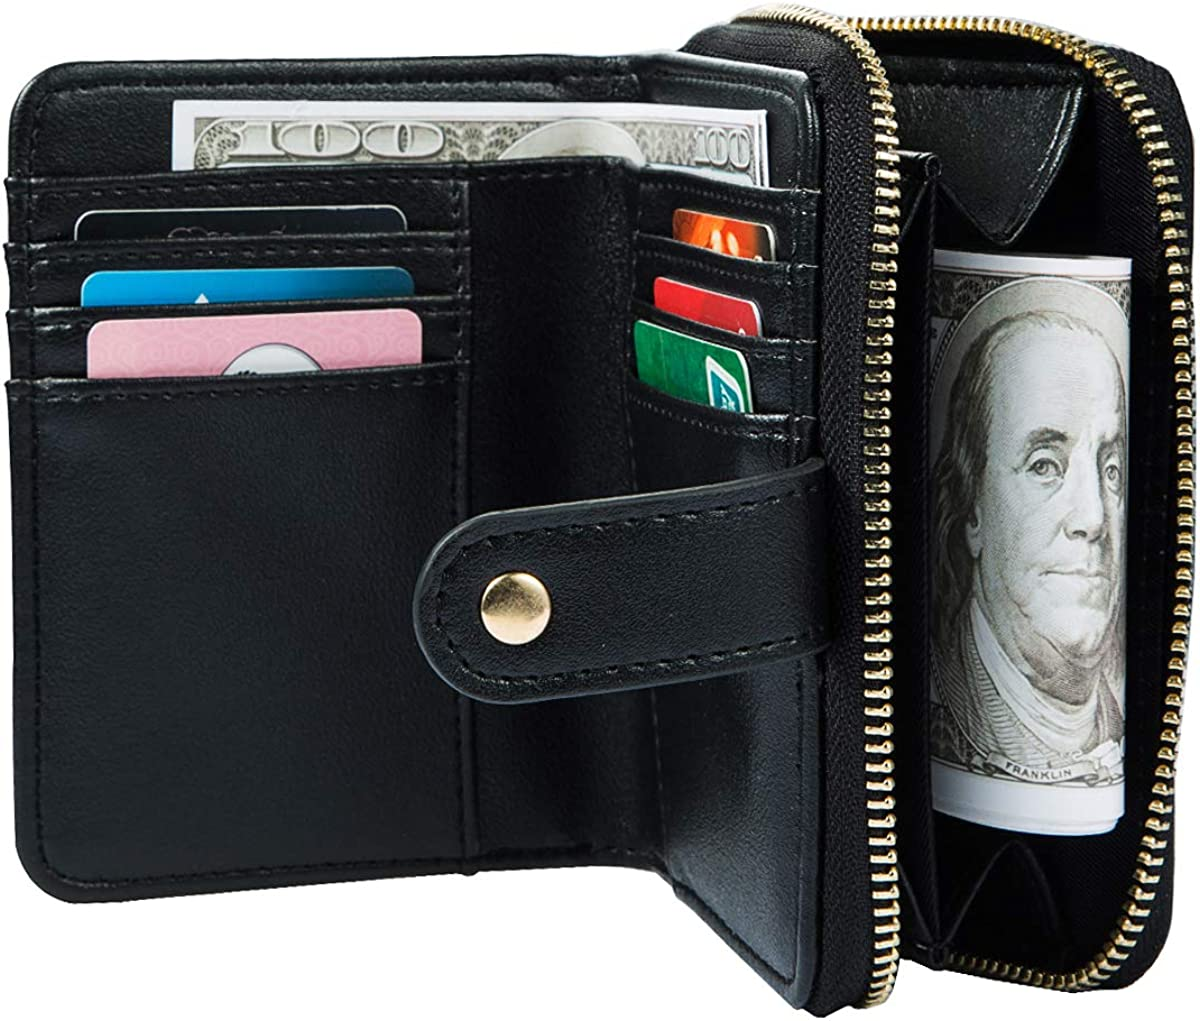 Heaye Small Wallet for Women Card Holder Coin Pocket with Wrist Strap 6 Card Slots